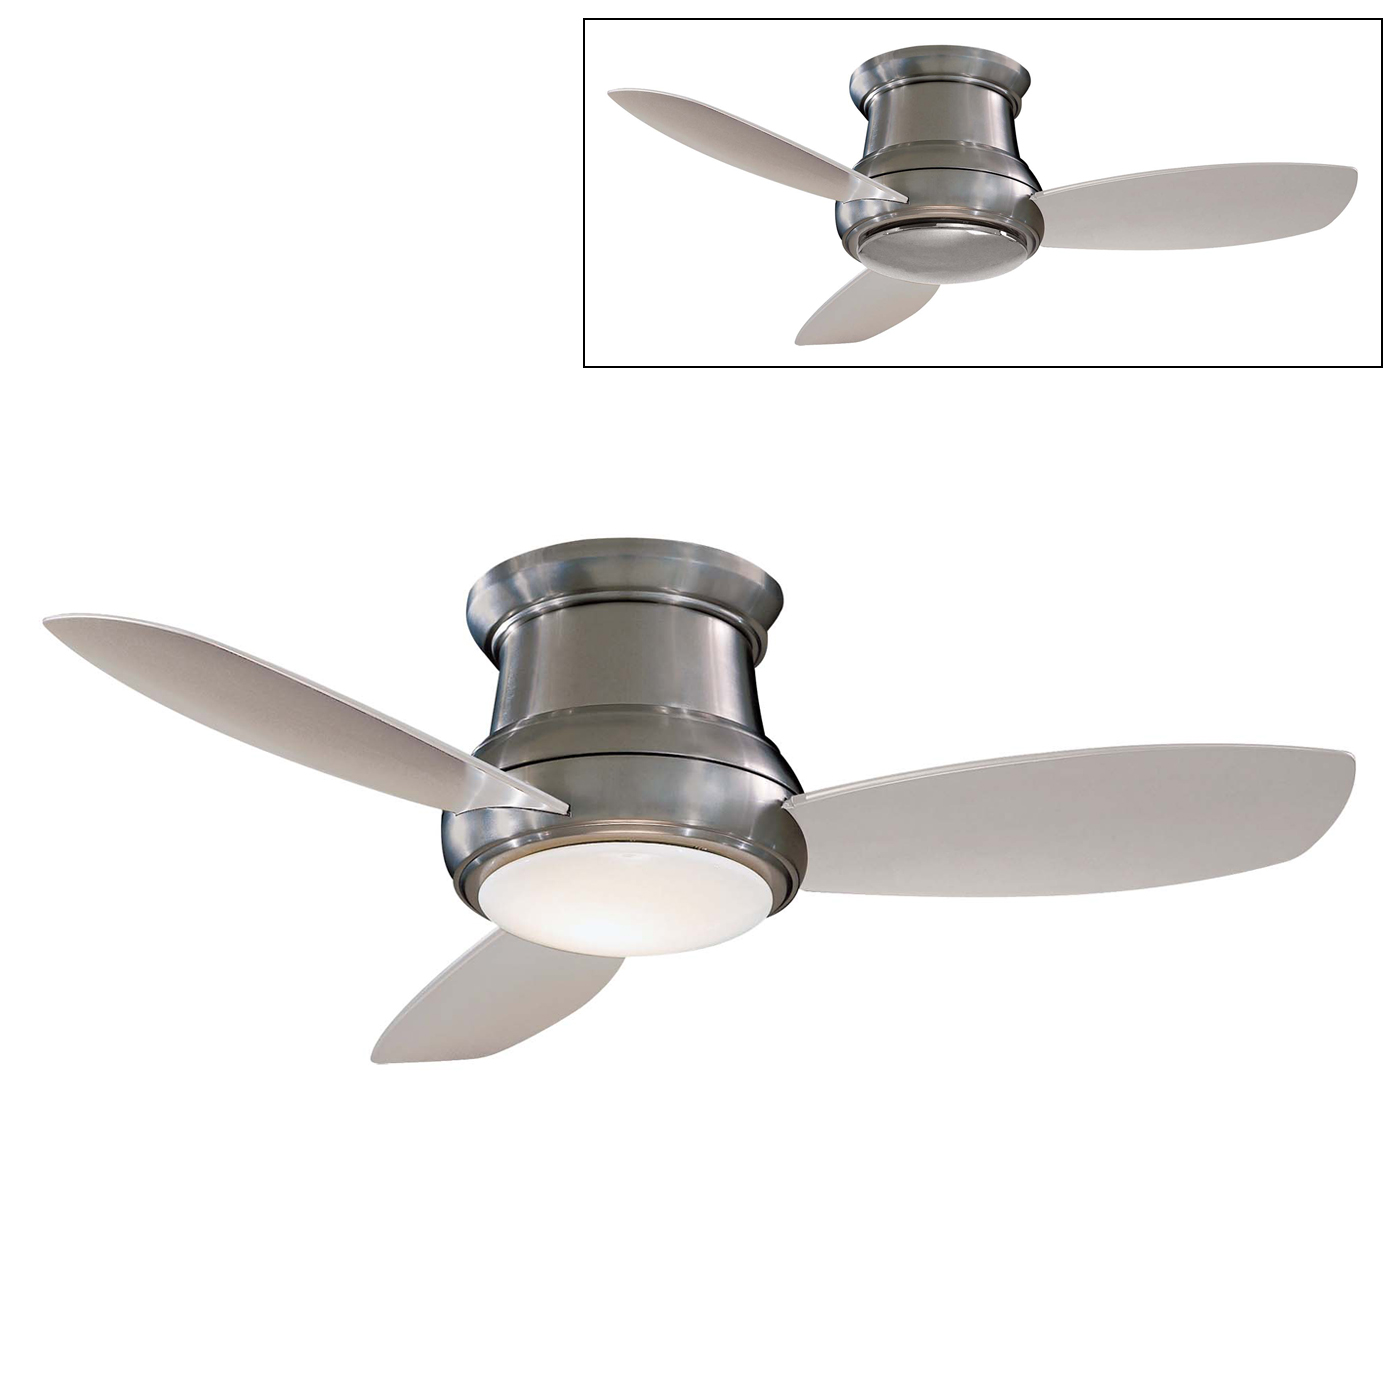 Contemporary Ceiling Fans With Light HomesFeed - White kitchen ceiling fan with light